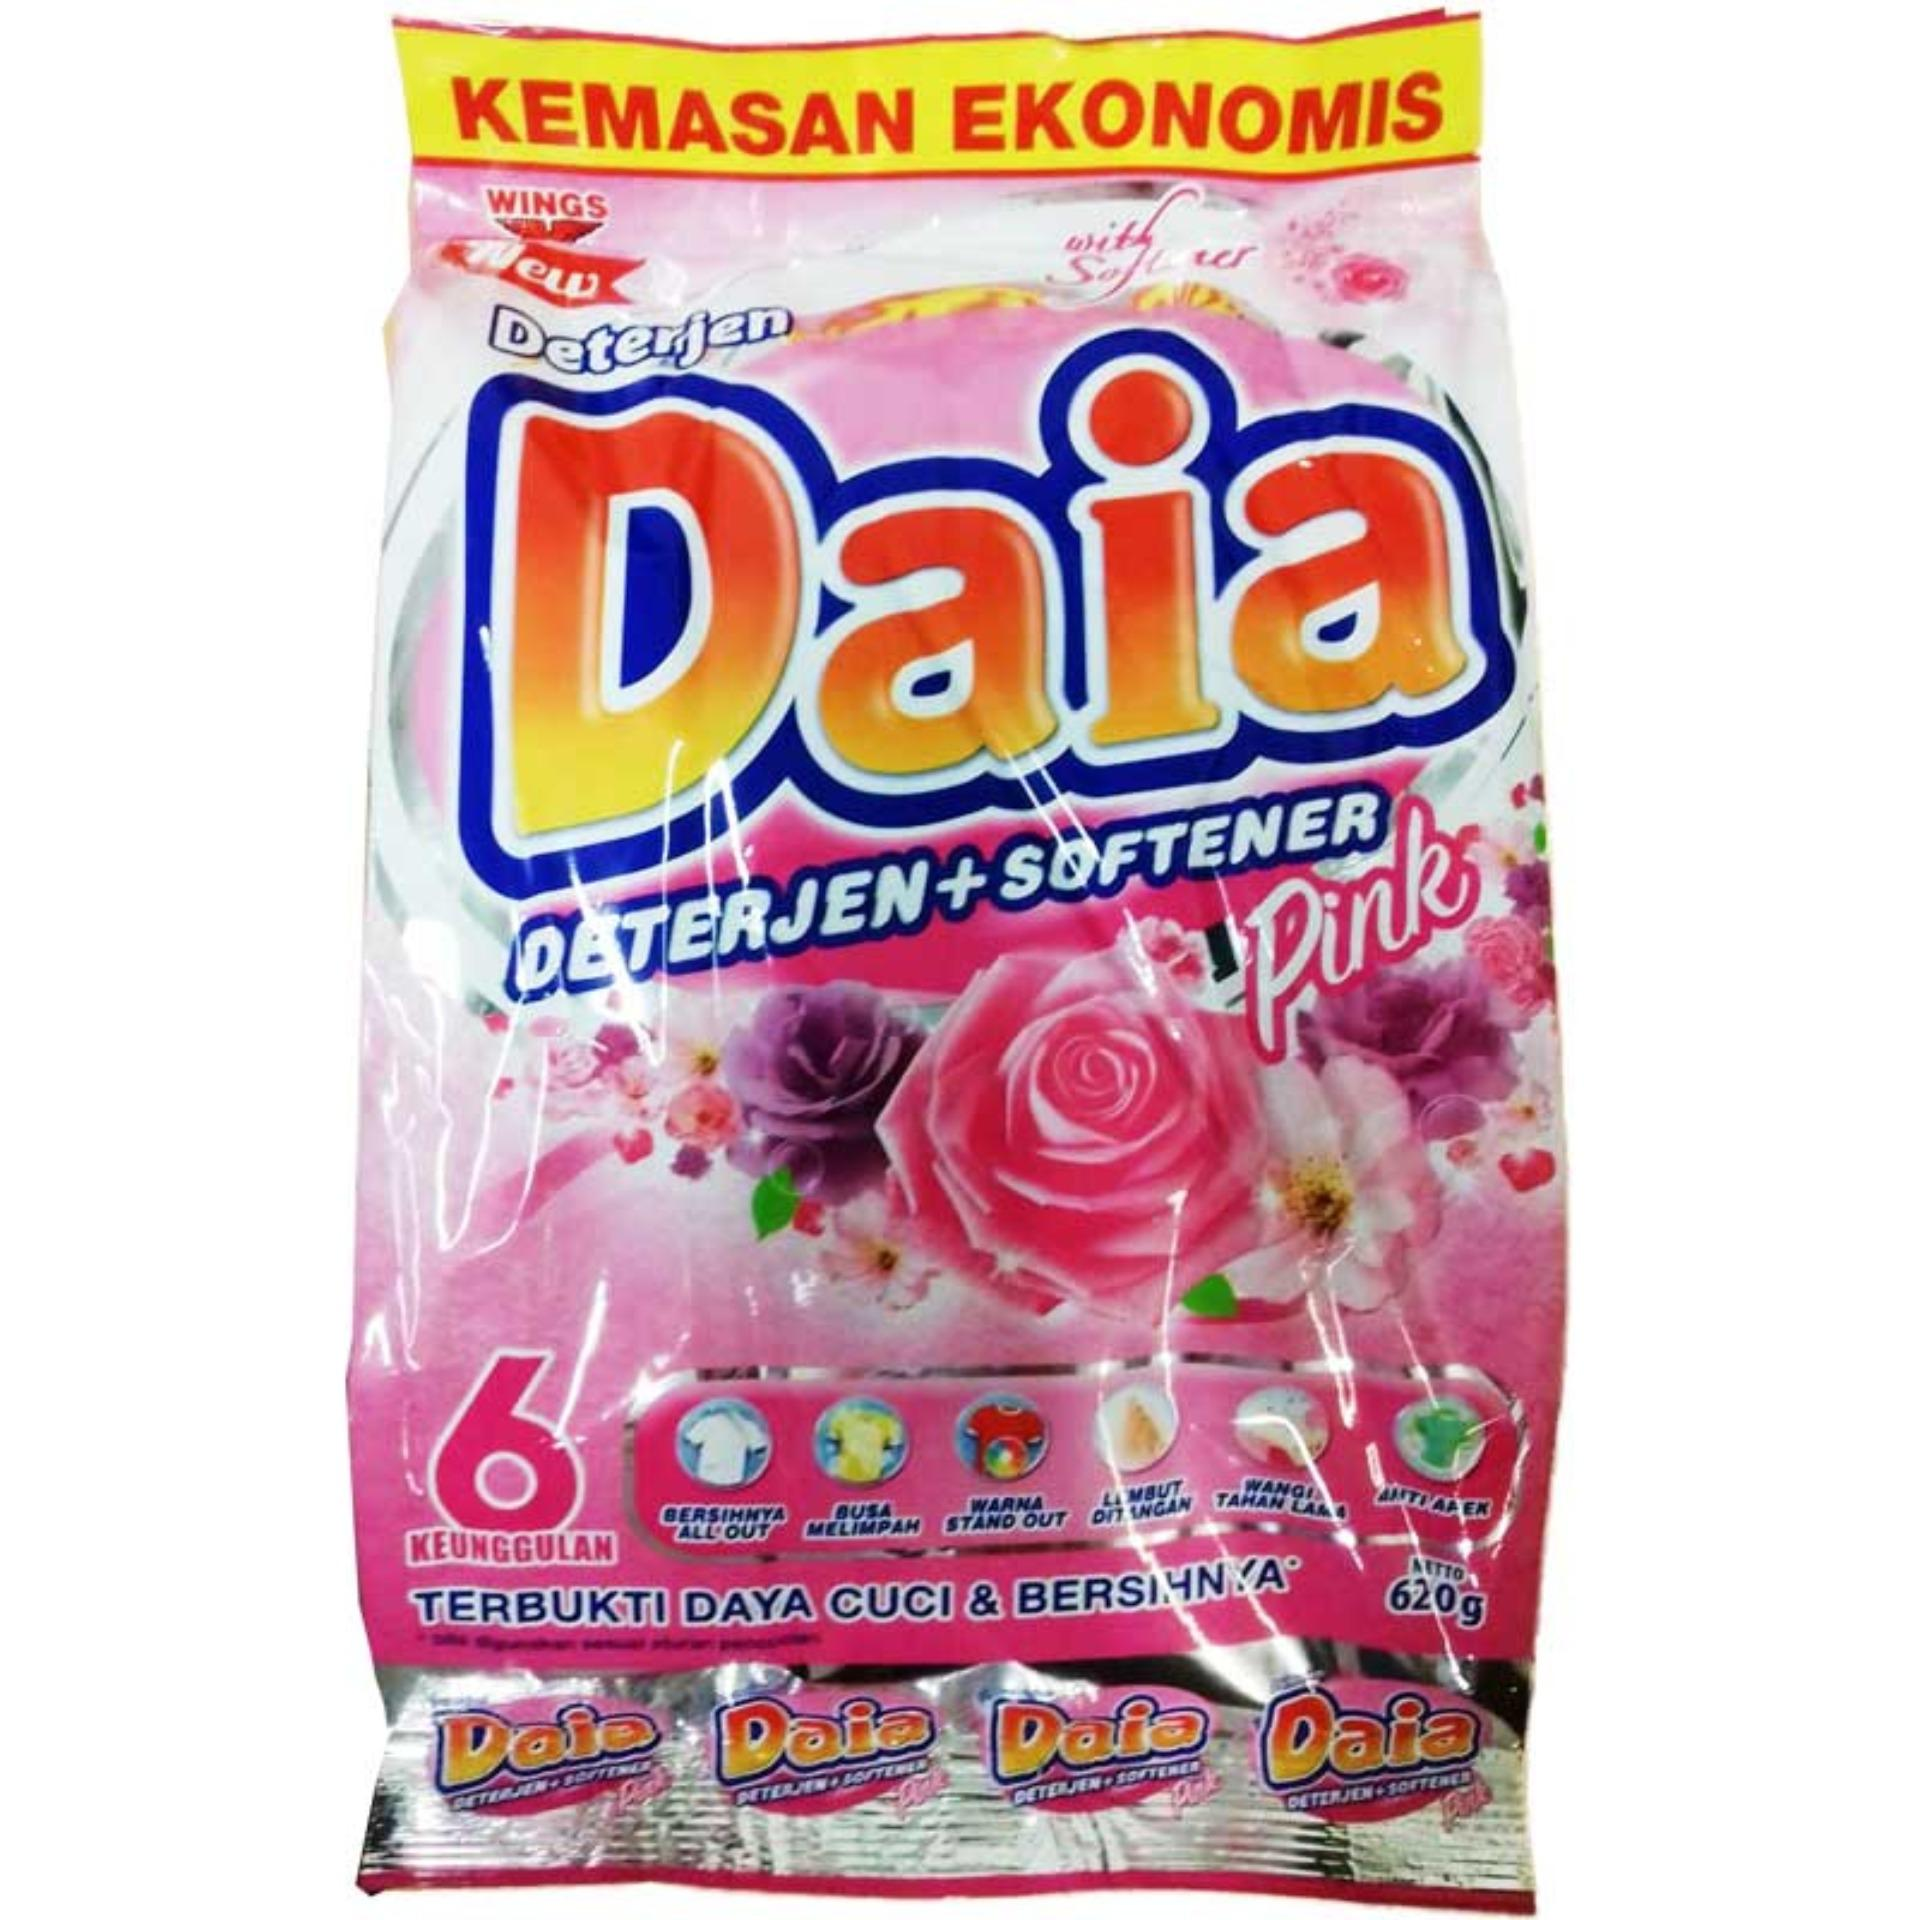 Buy Sell Cheapest Ooplm Pencuci Cucian Best Quality Product Deals Hpr009 Bola Karet Baju Clean Ball Laundry Daia Softener 620g